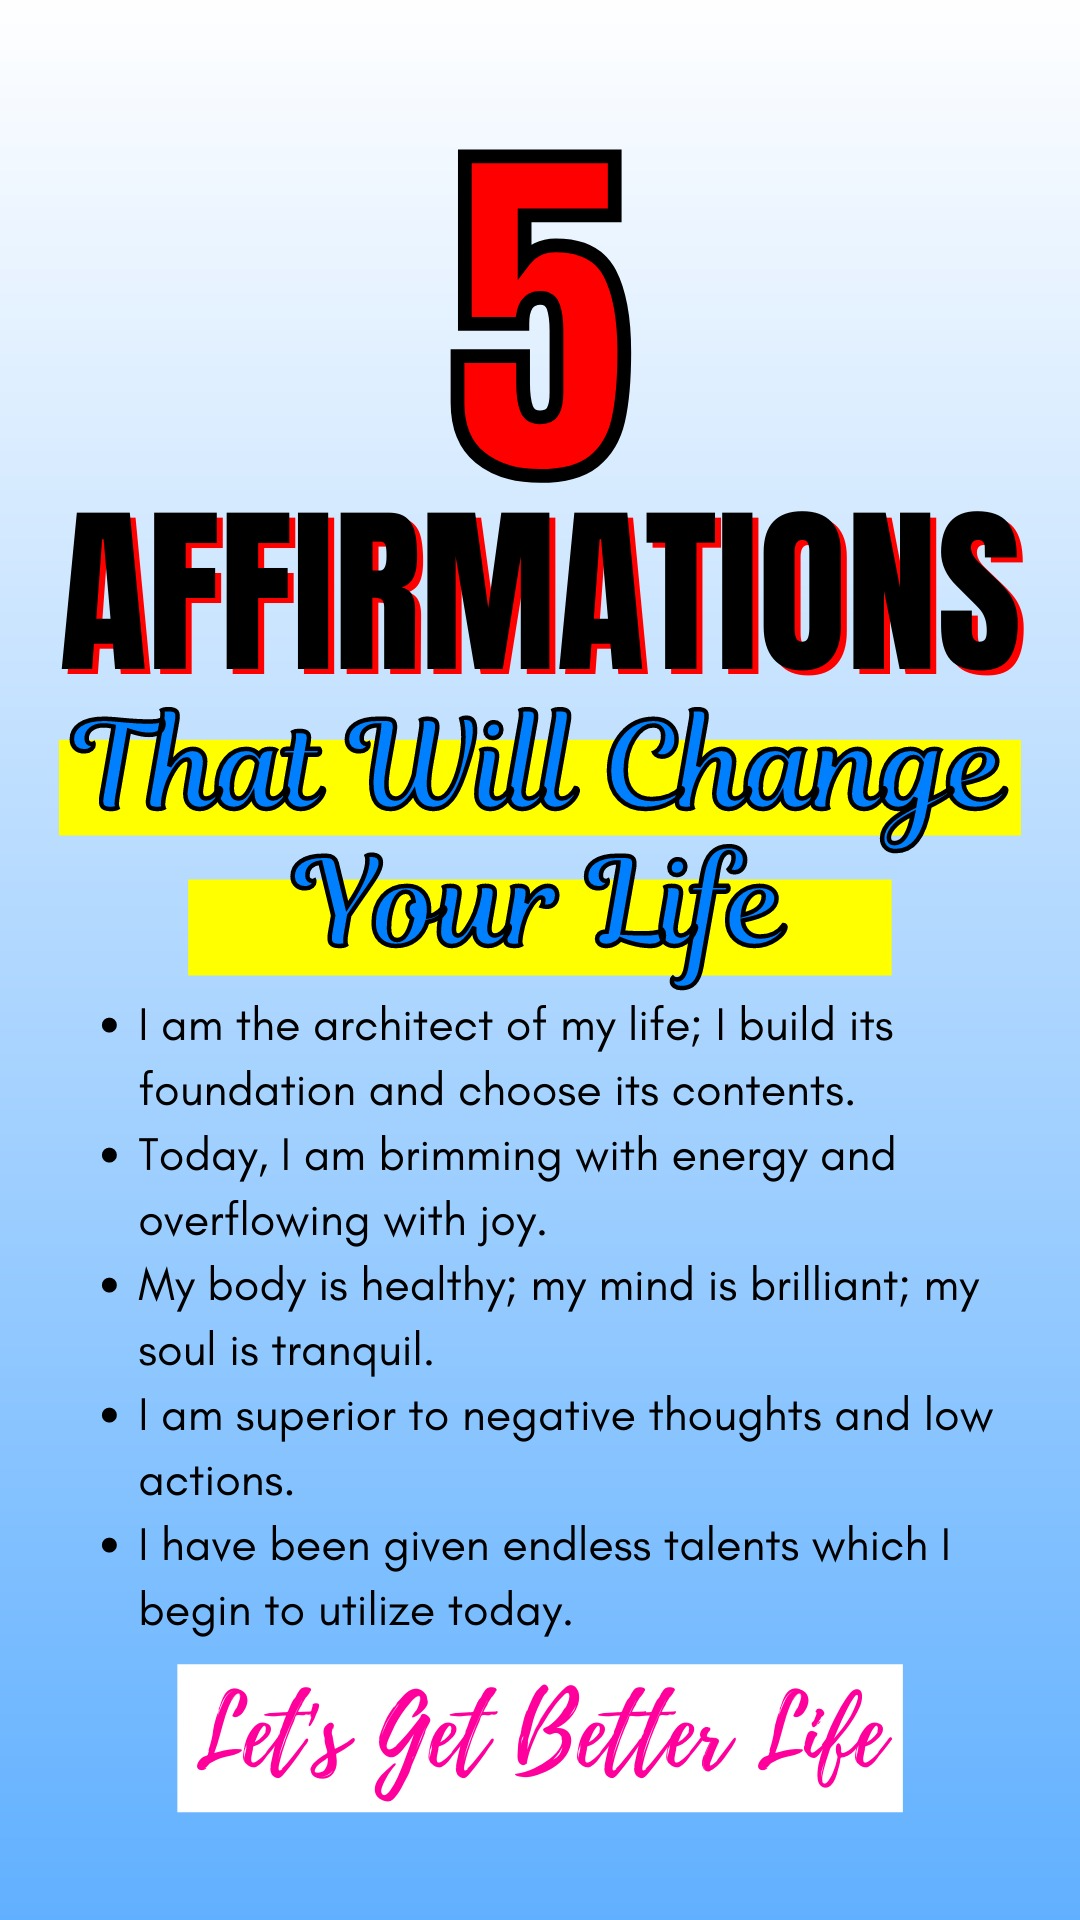 5 Affirmations That Will Change Your Life